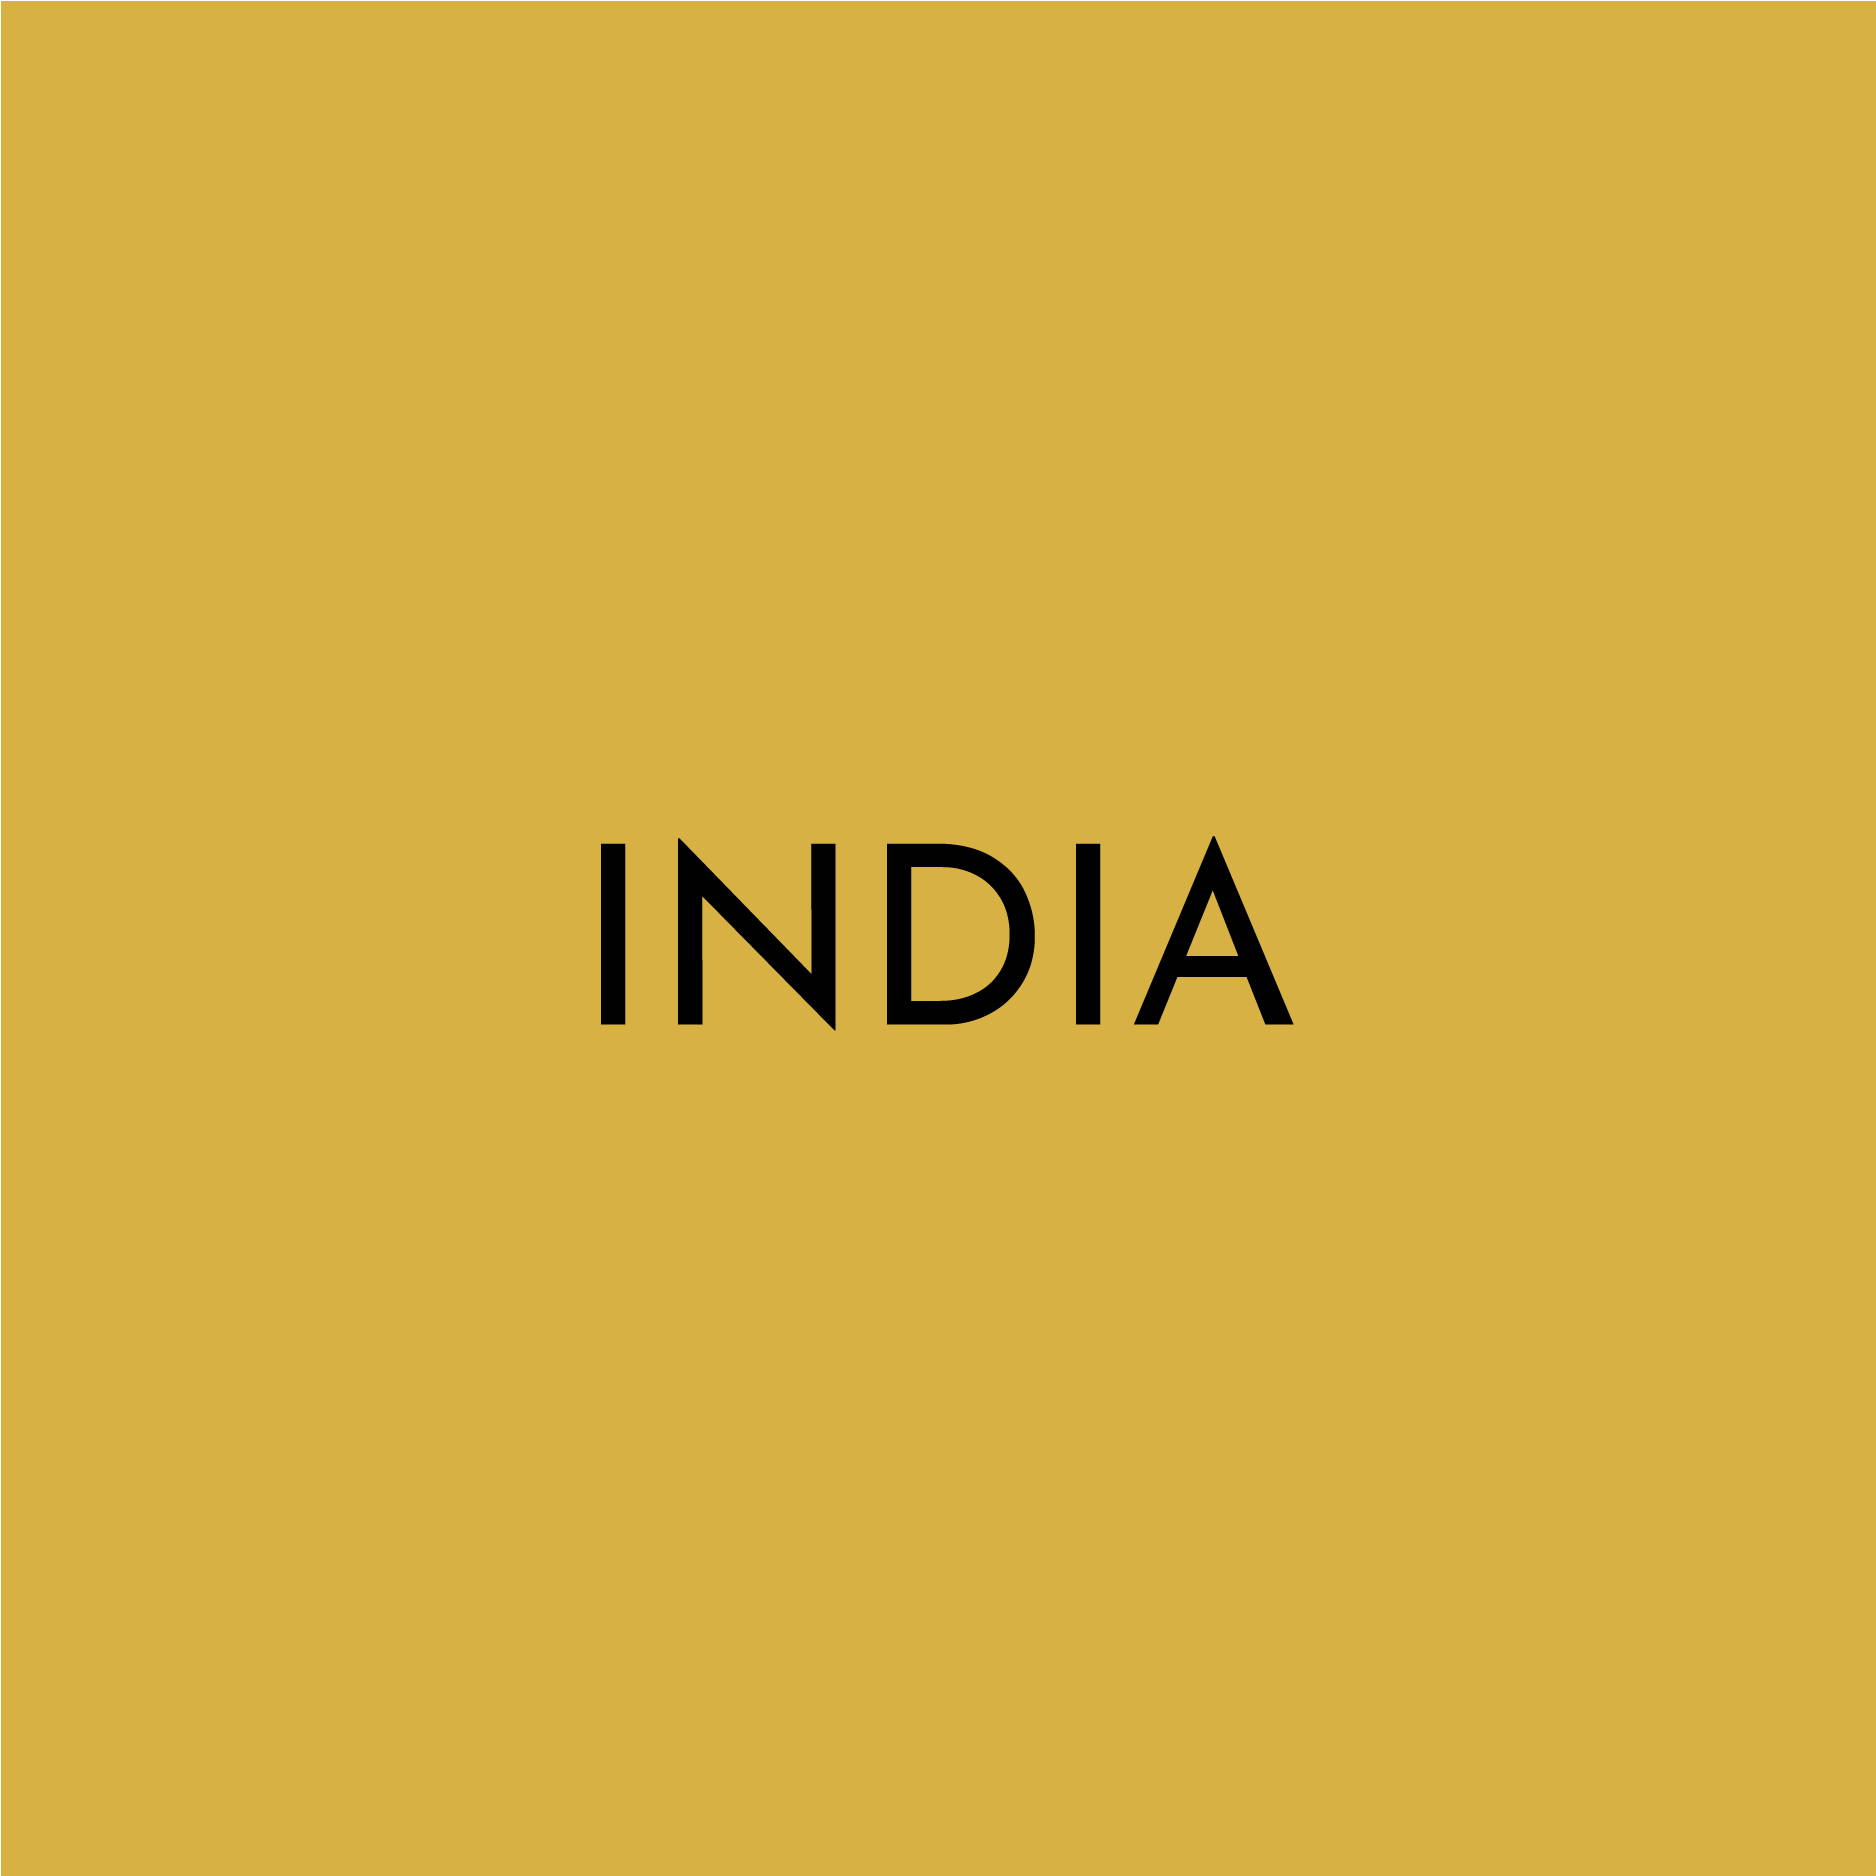 "A solid yellow block contains the text ""INDIA"""